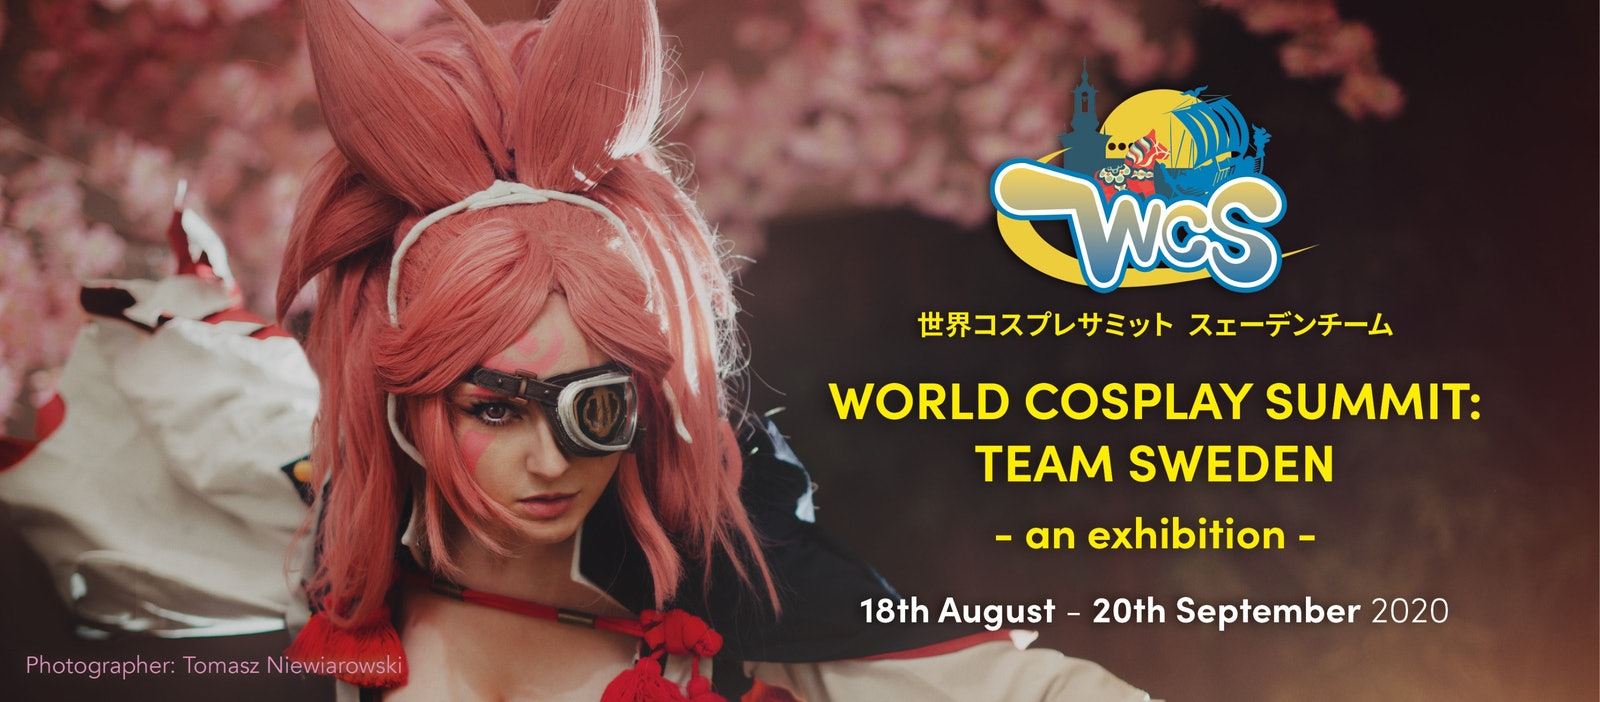 WORLD COSPLAY SUMMIT: TEAM SWEDEN // 18 August- 20 September 2020